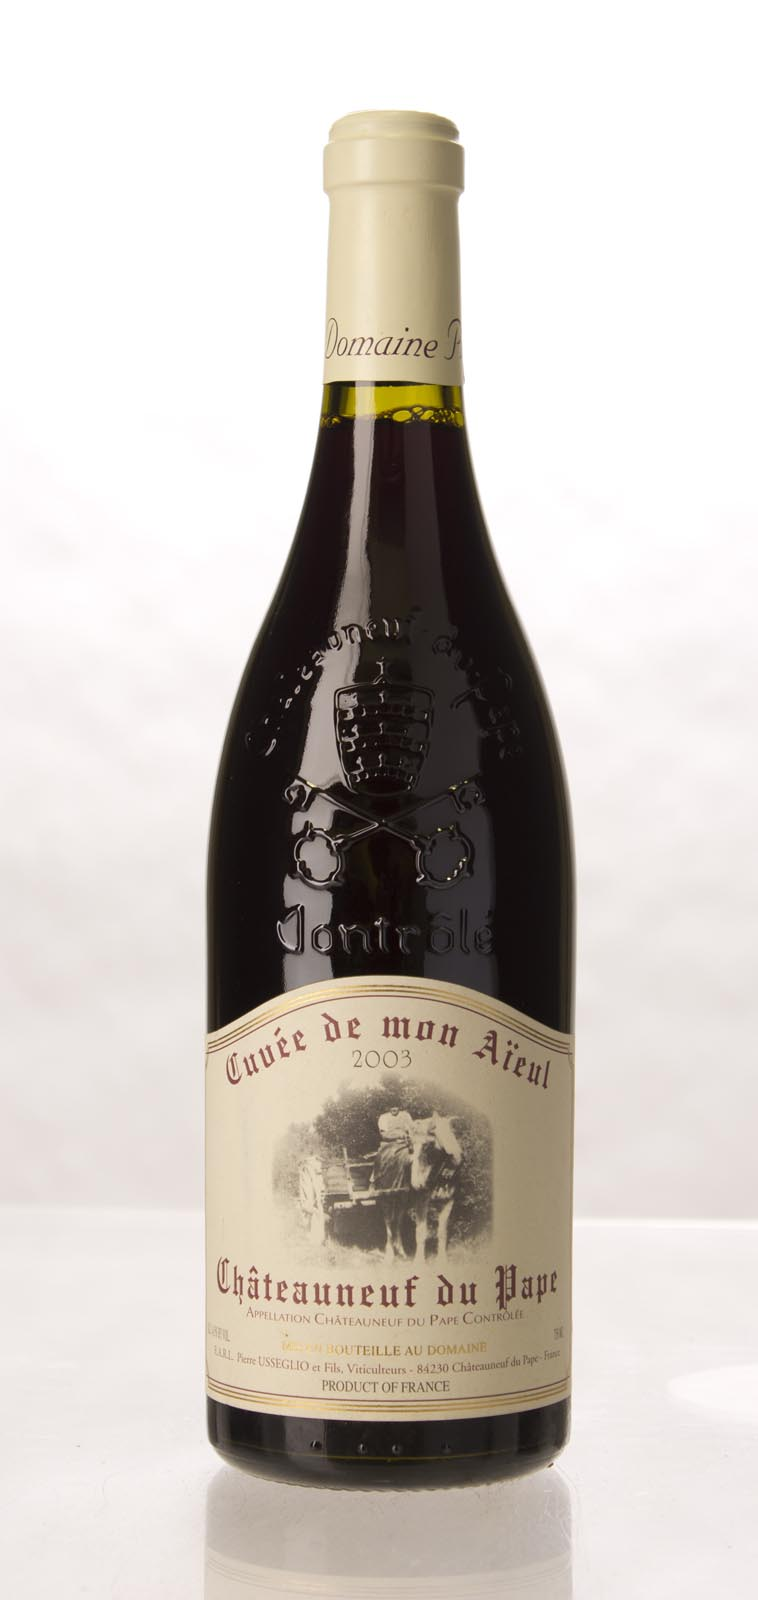 Pierre Usseglio Chateauneuf du Pape Cuvee de Mon Aieul 2003,  (WA98) from The BPW - Merchants of rare and fine wines.